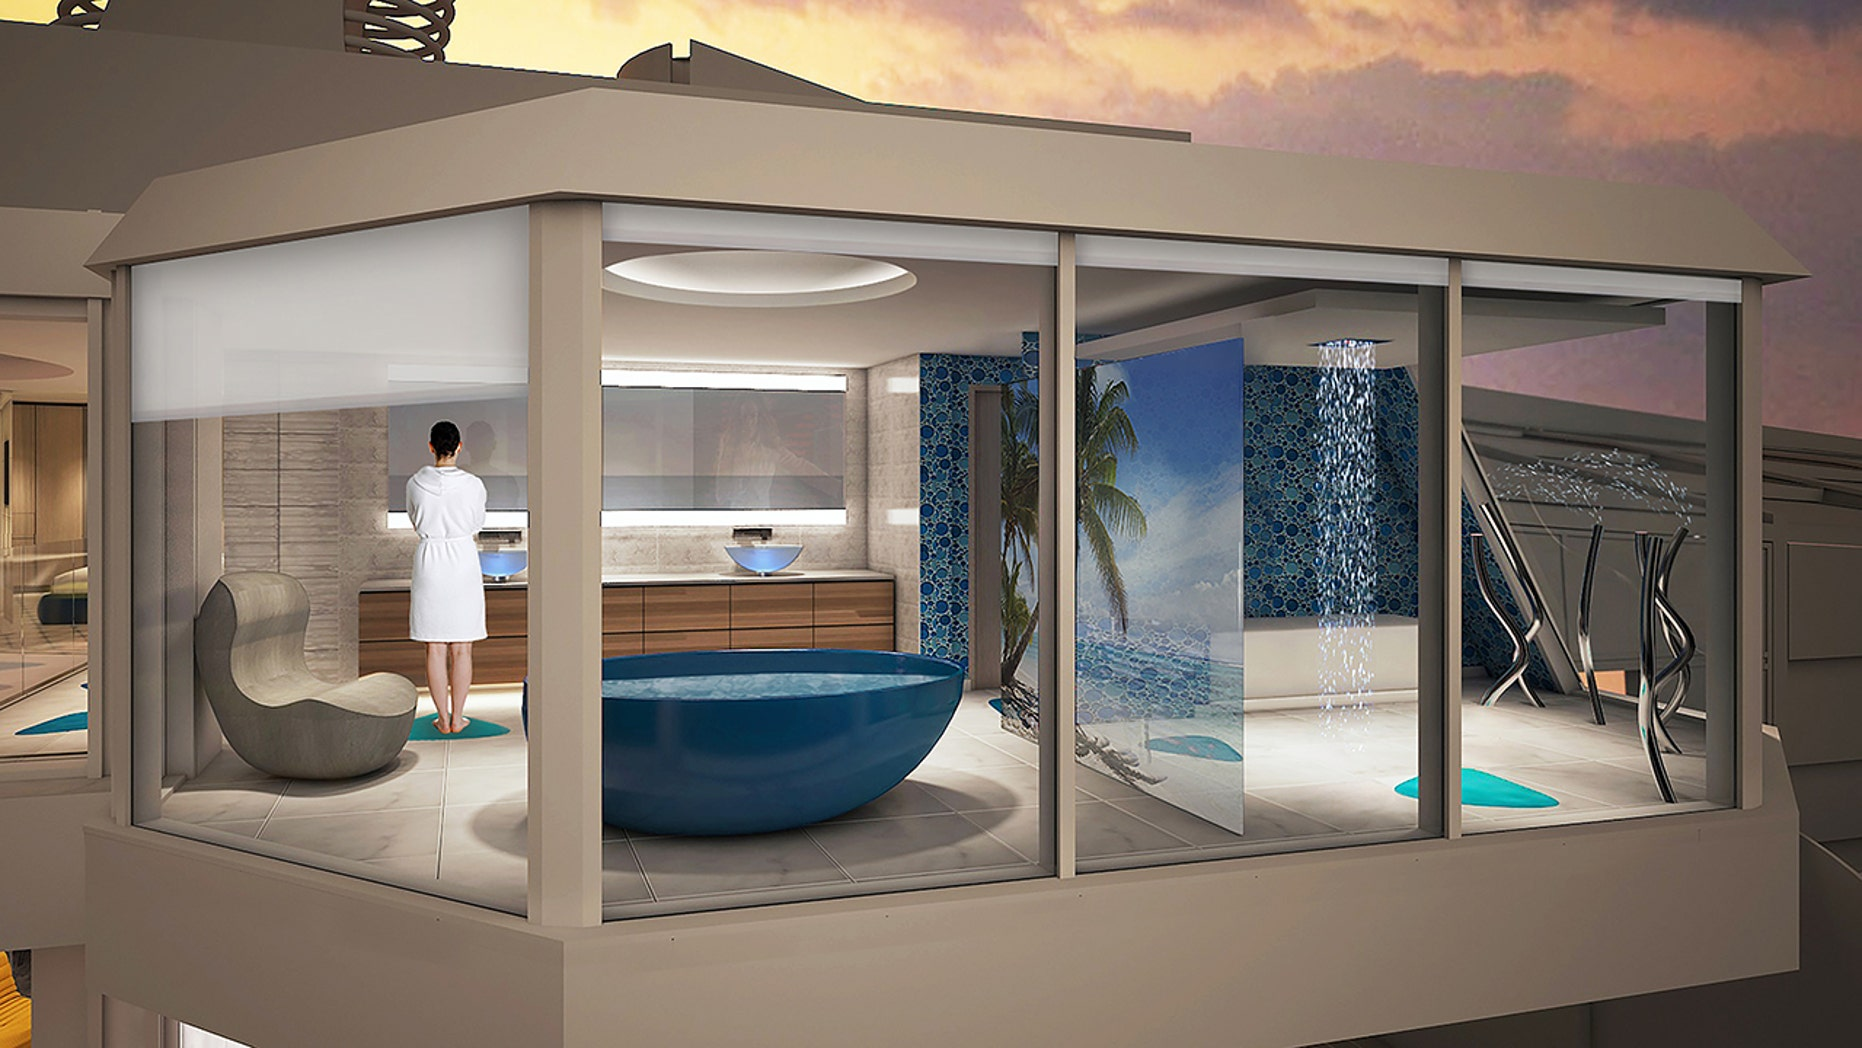 The Spectrum of the Seas will offer select guests the chance to bathe over the sea.